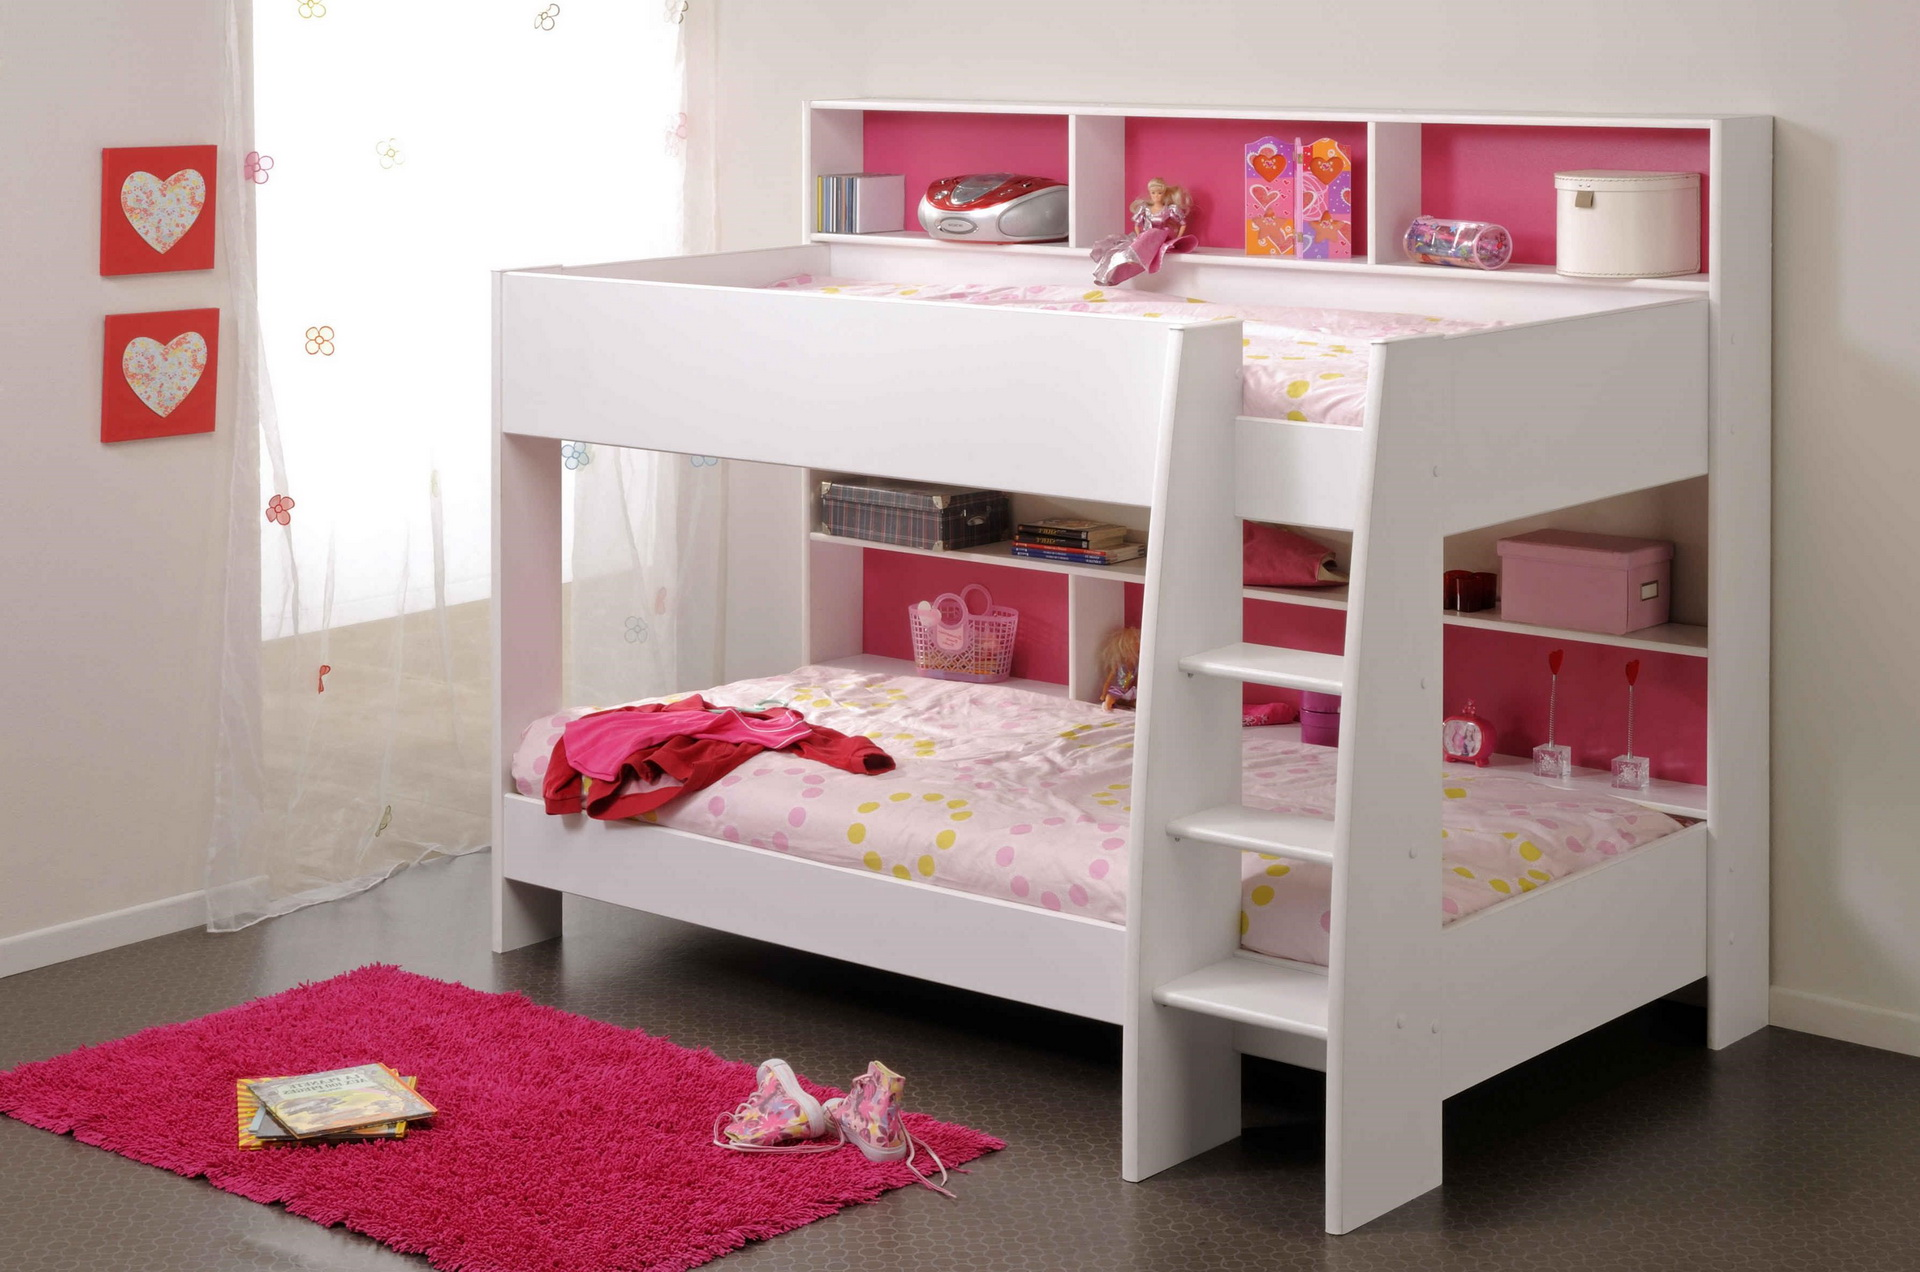 Rooms to go bedroom furniture for kids